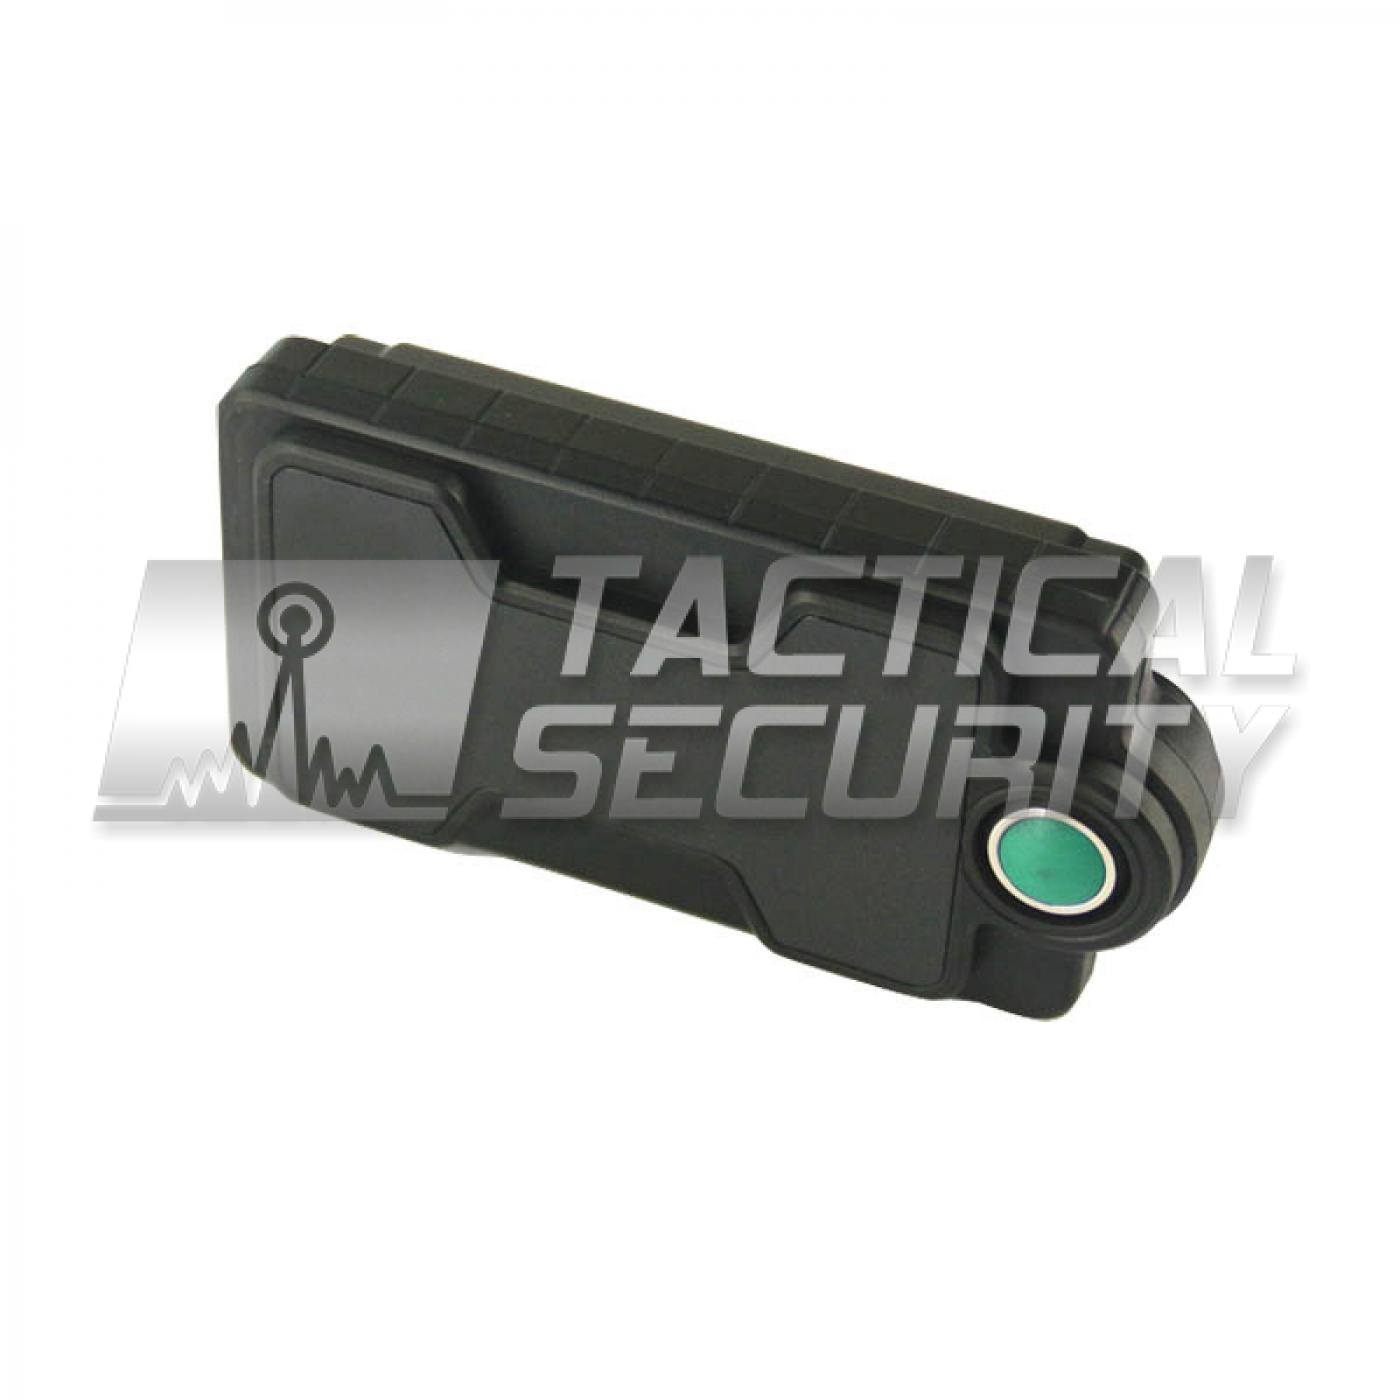 Tracker GPS IPX7 Long Lasting Battery trasero